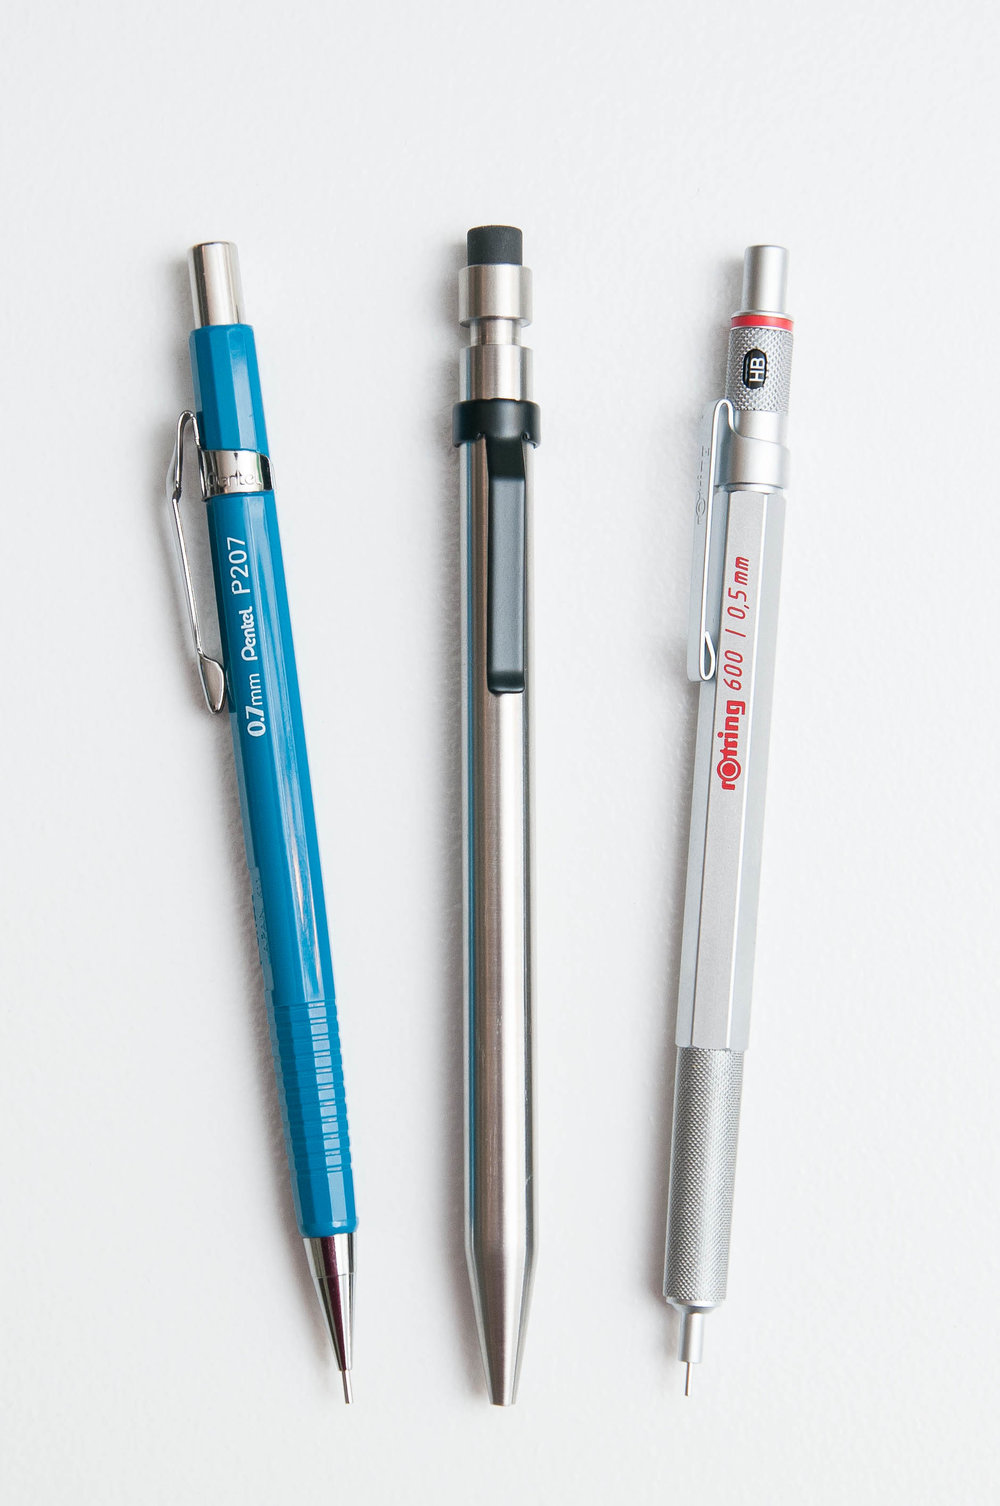 Modern Fuel Pencil Comparison